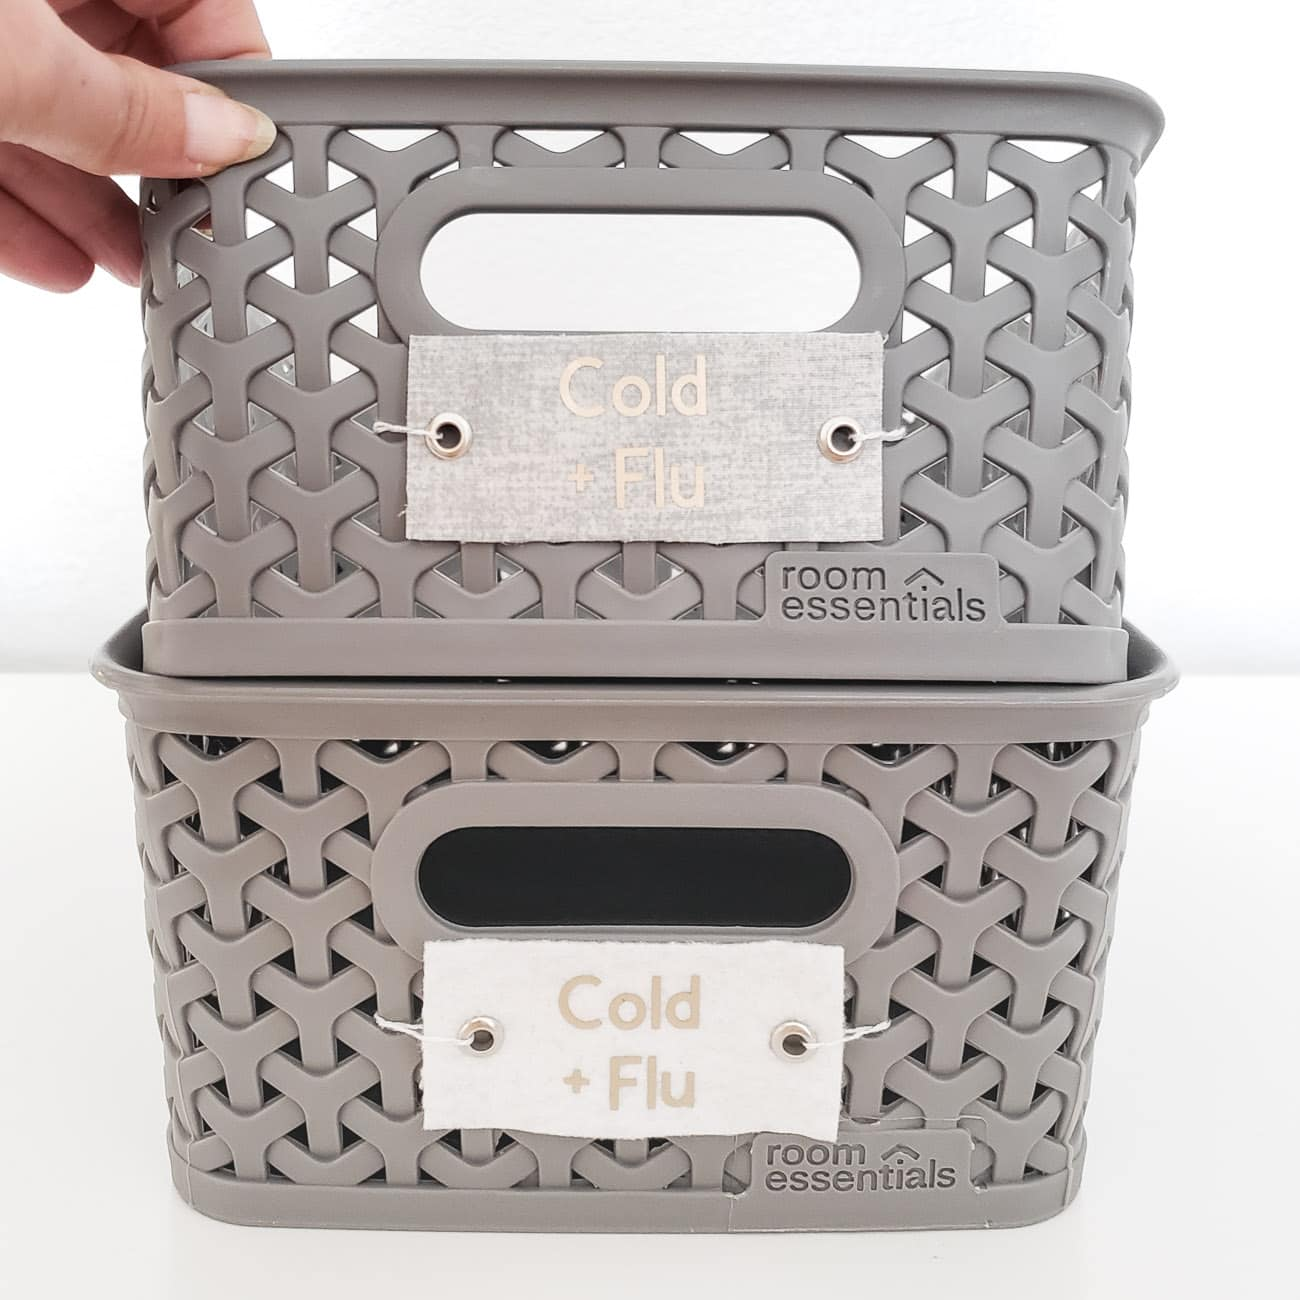 Diy Labels For Home Organization With The Cricut Easypress